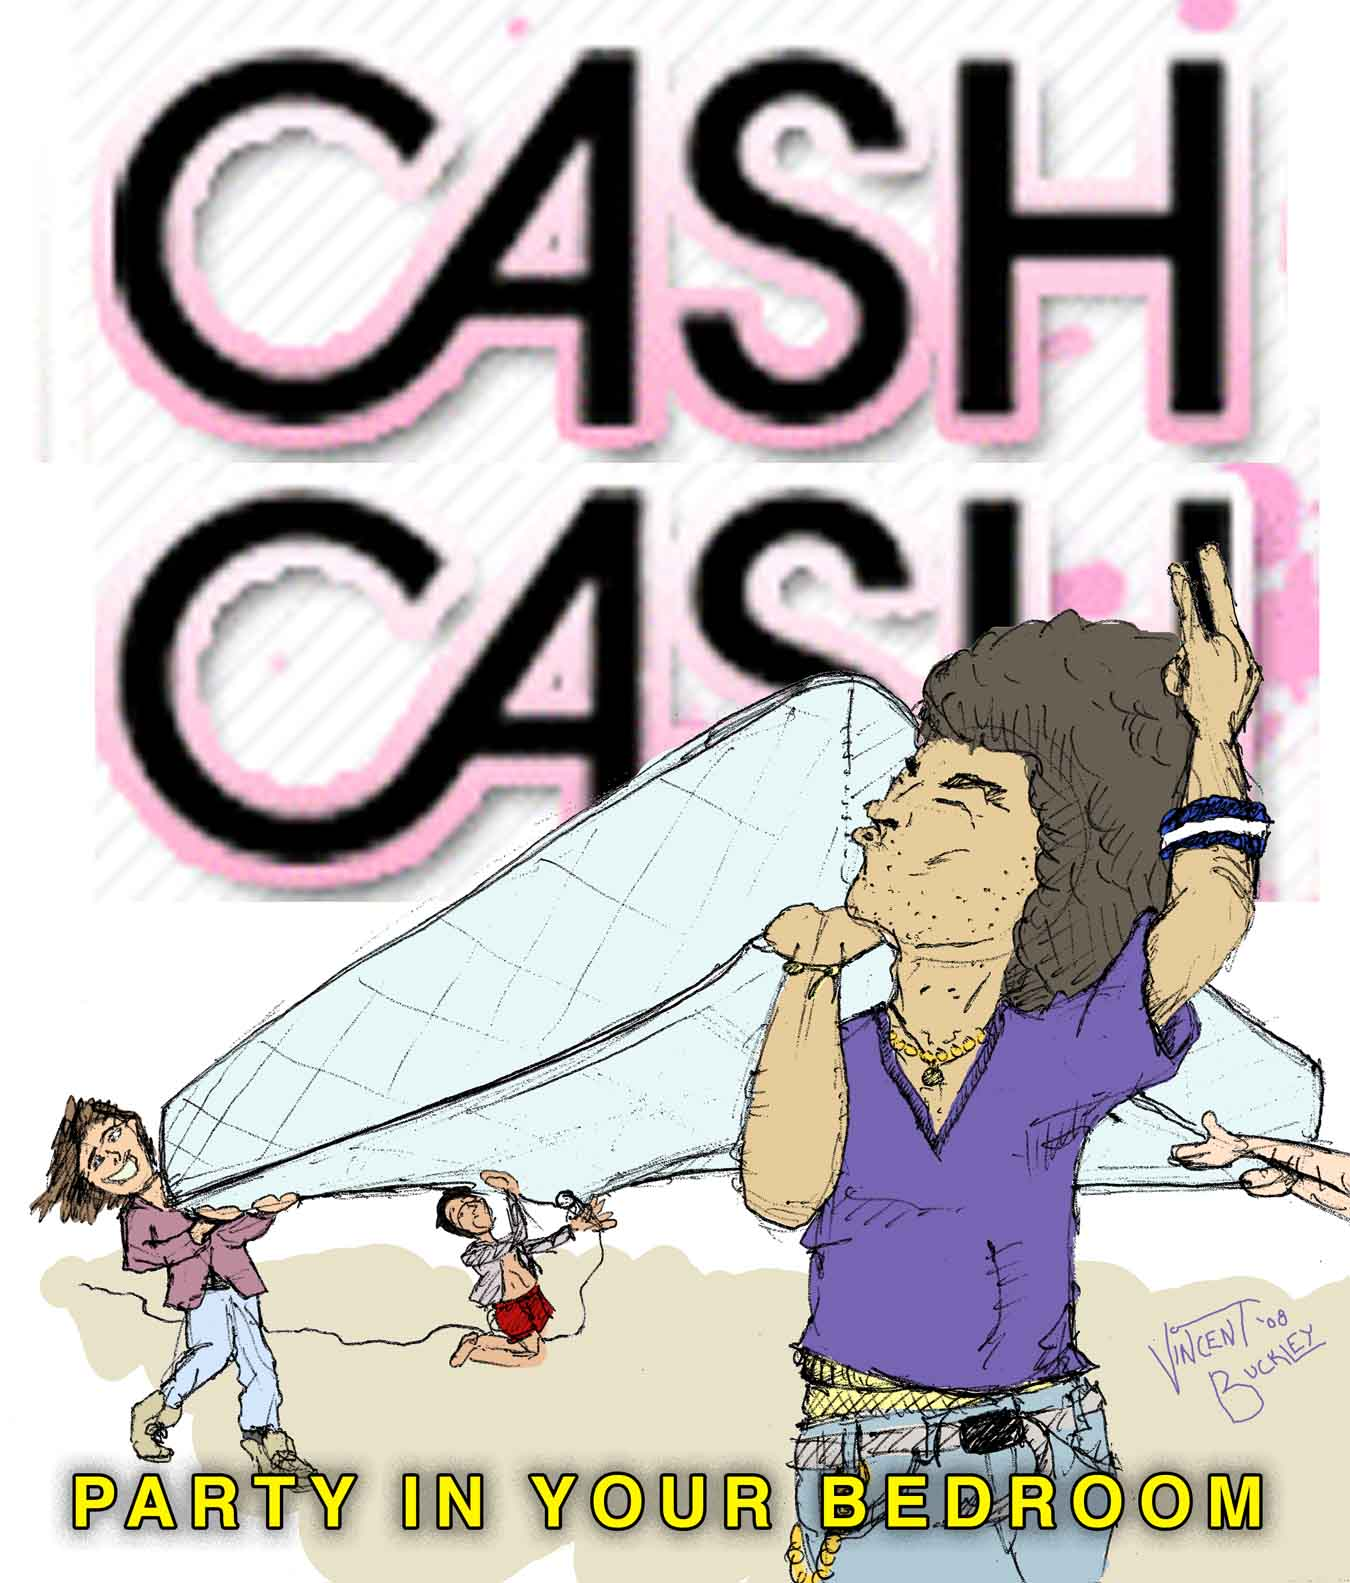 song party in your bedroom cash cash party in your bedroom treatment